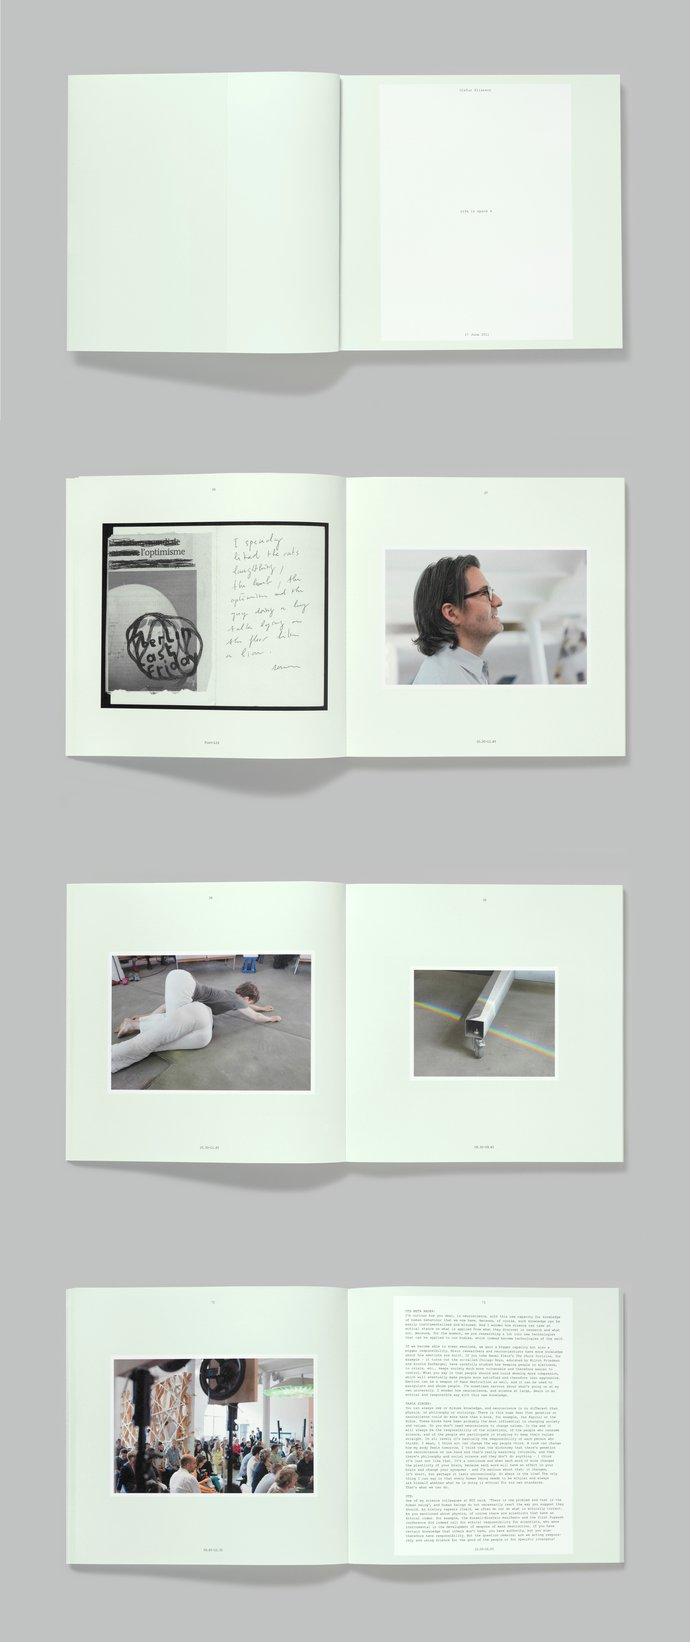 Olafur Eliasson – Life is Space 4 (with Peter Saville), 2012 (Publication), image 2